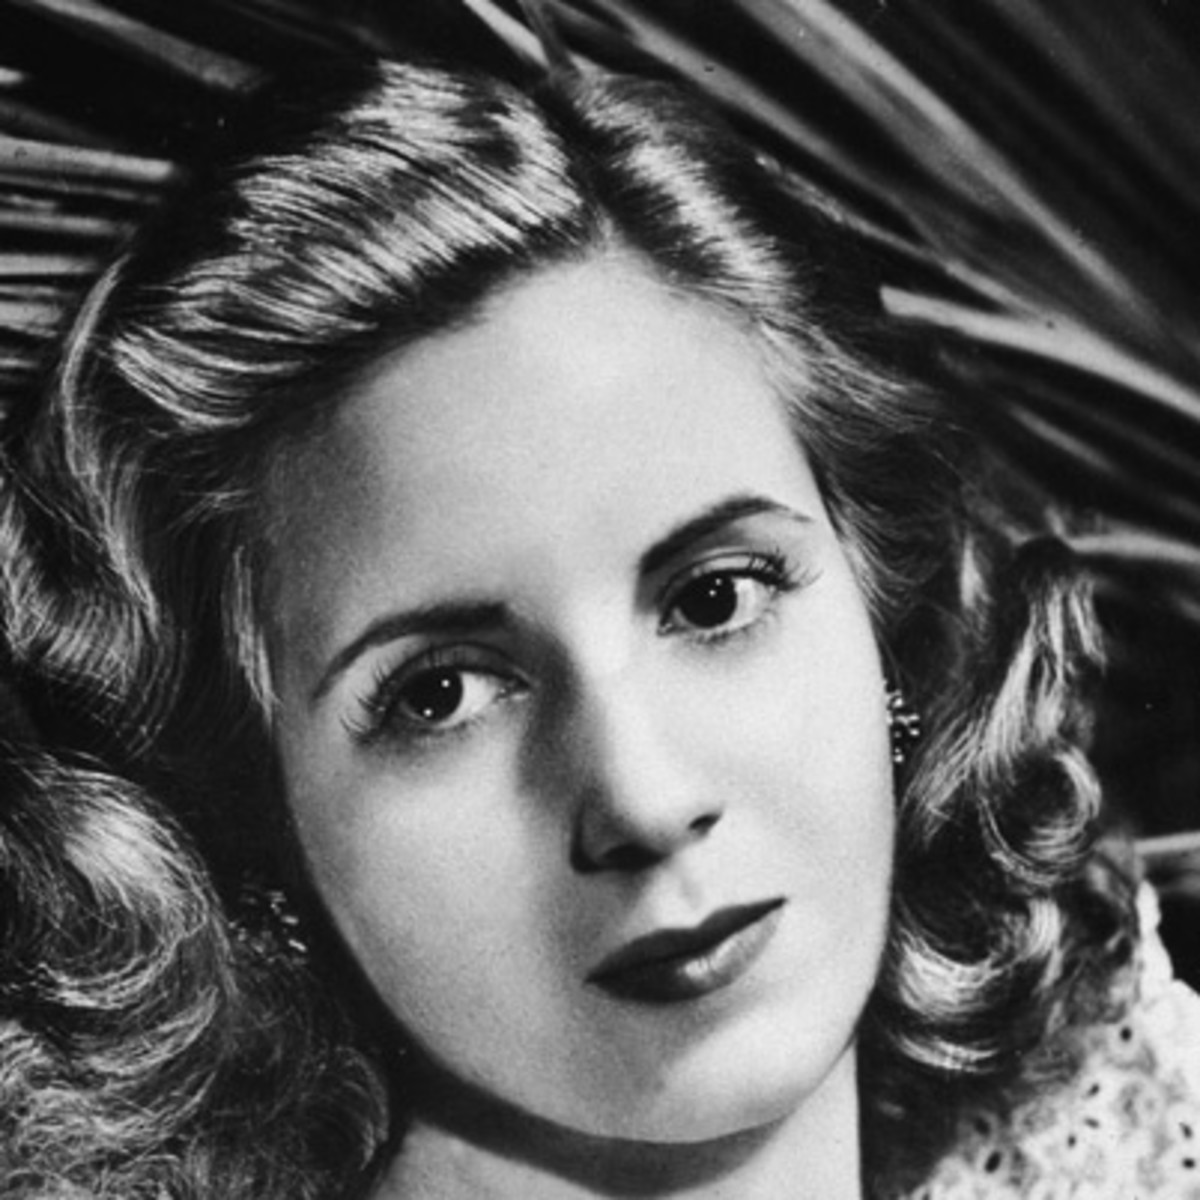 Eva Perón (Photo: Hulton Archive/Getty Images)